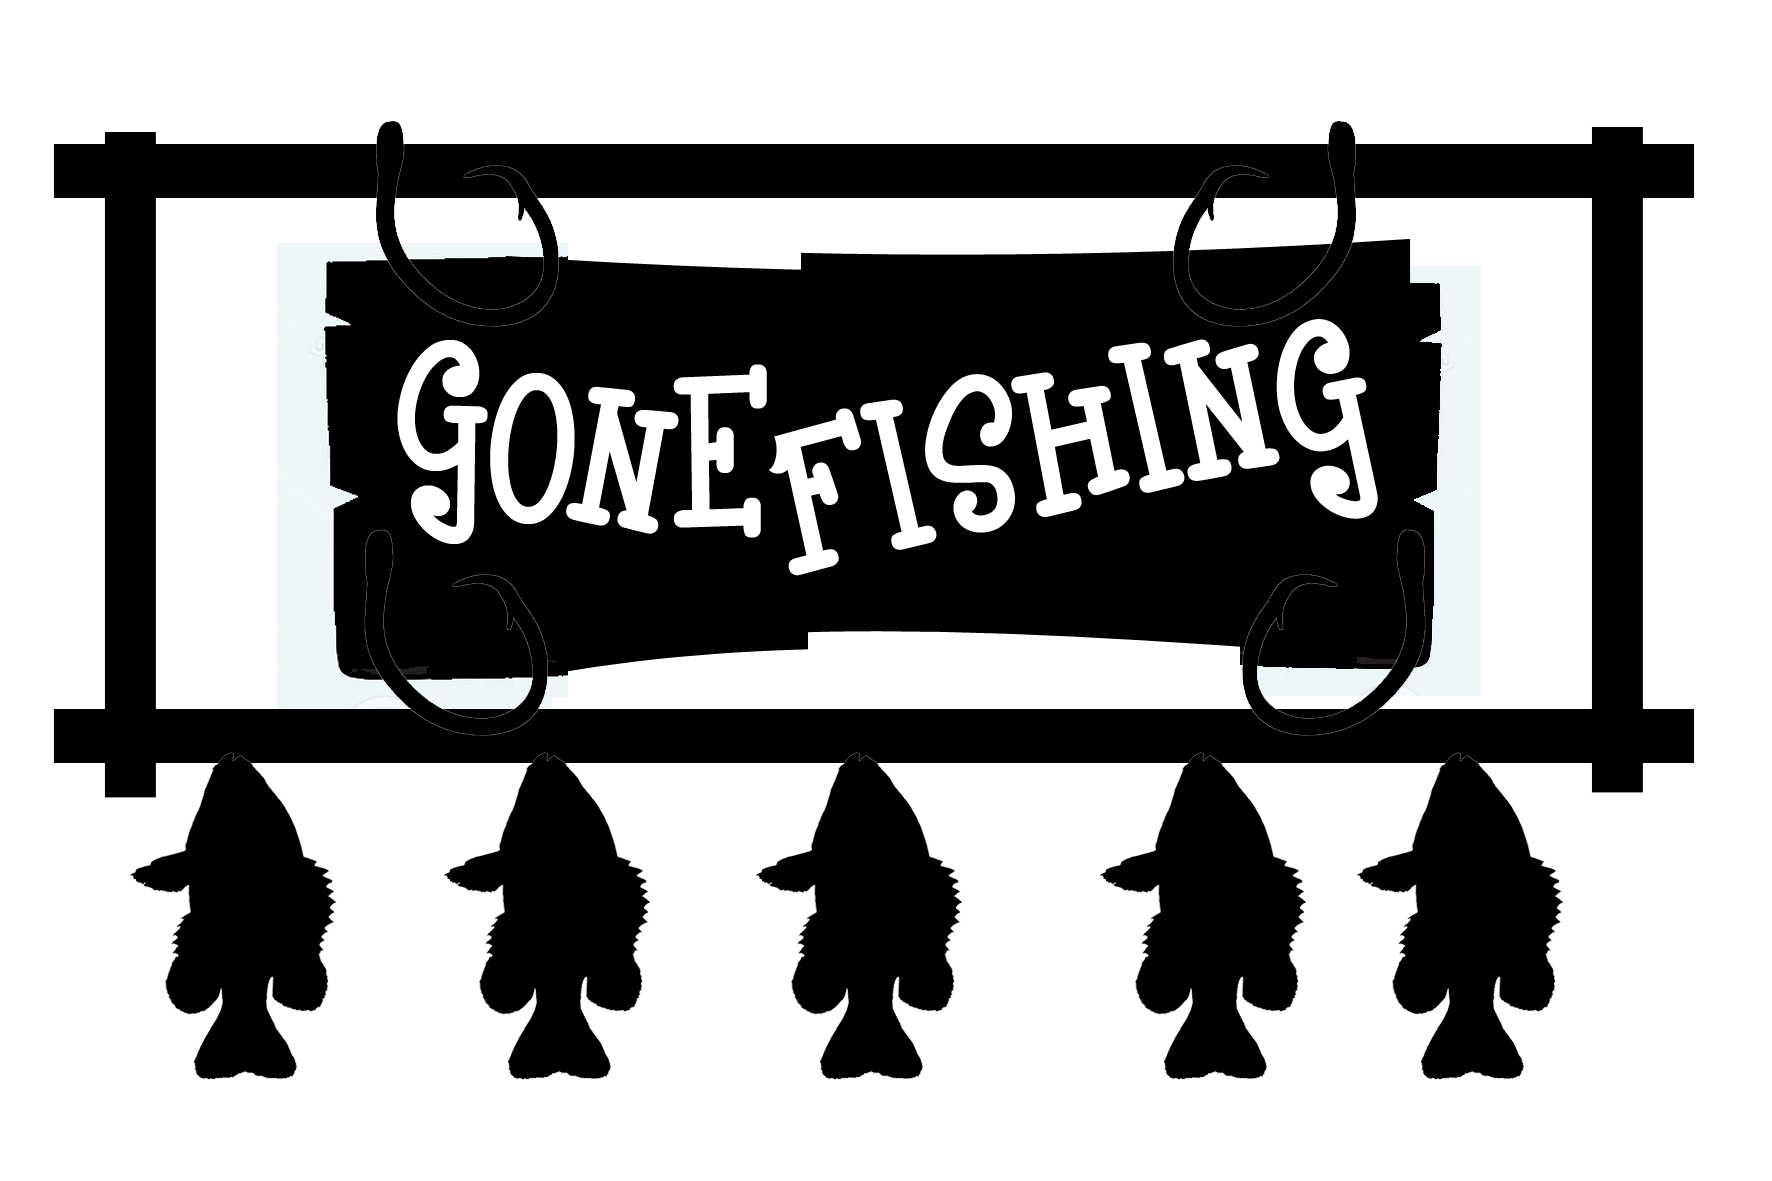 Fisherman clipart gone fishing #15